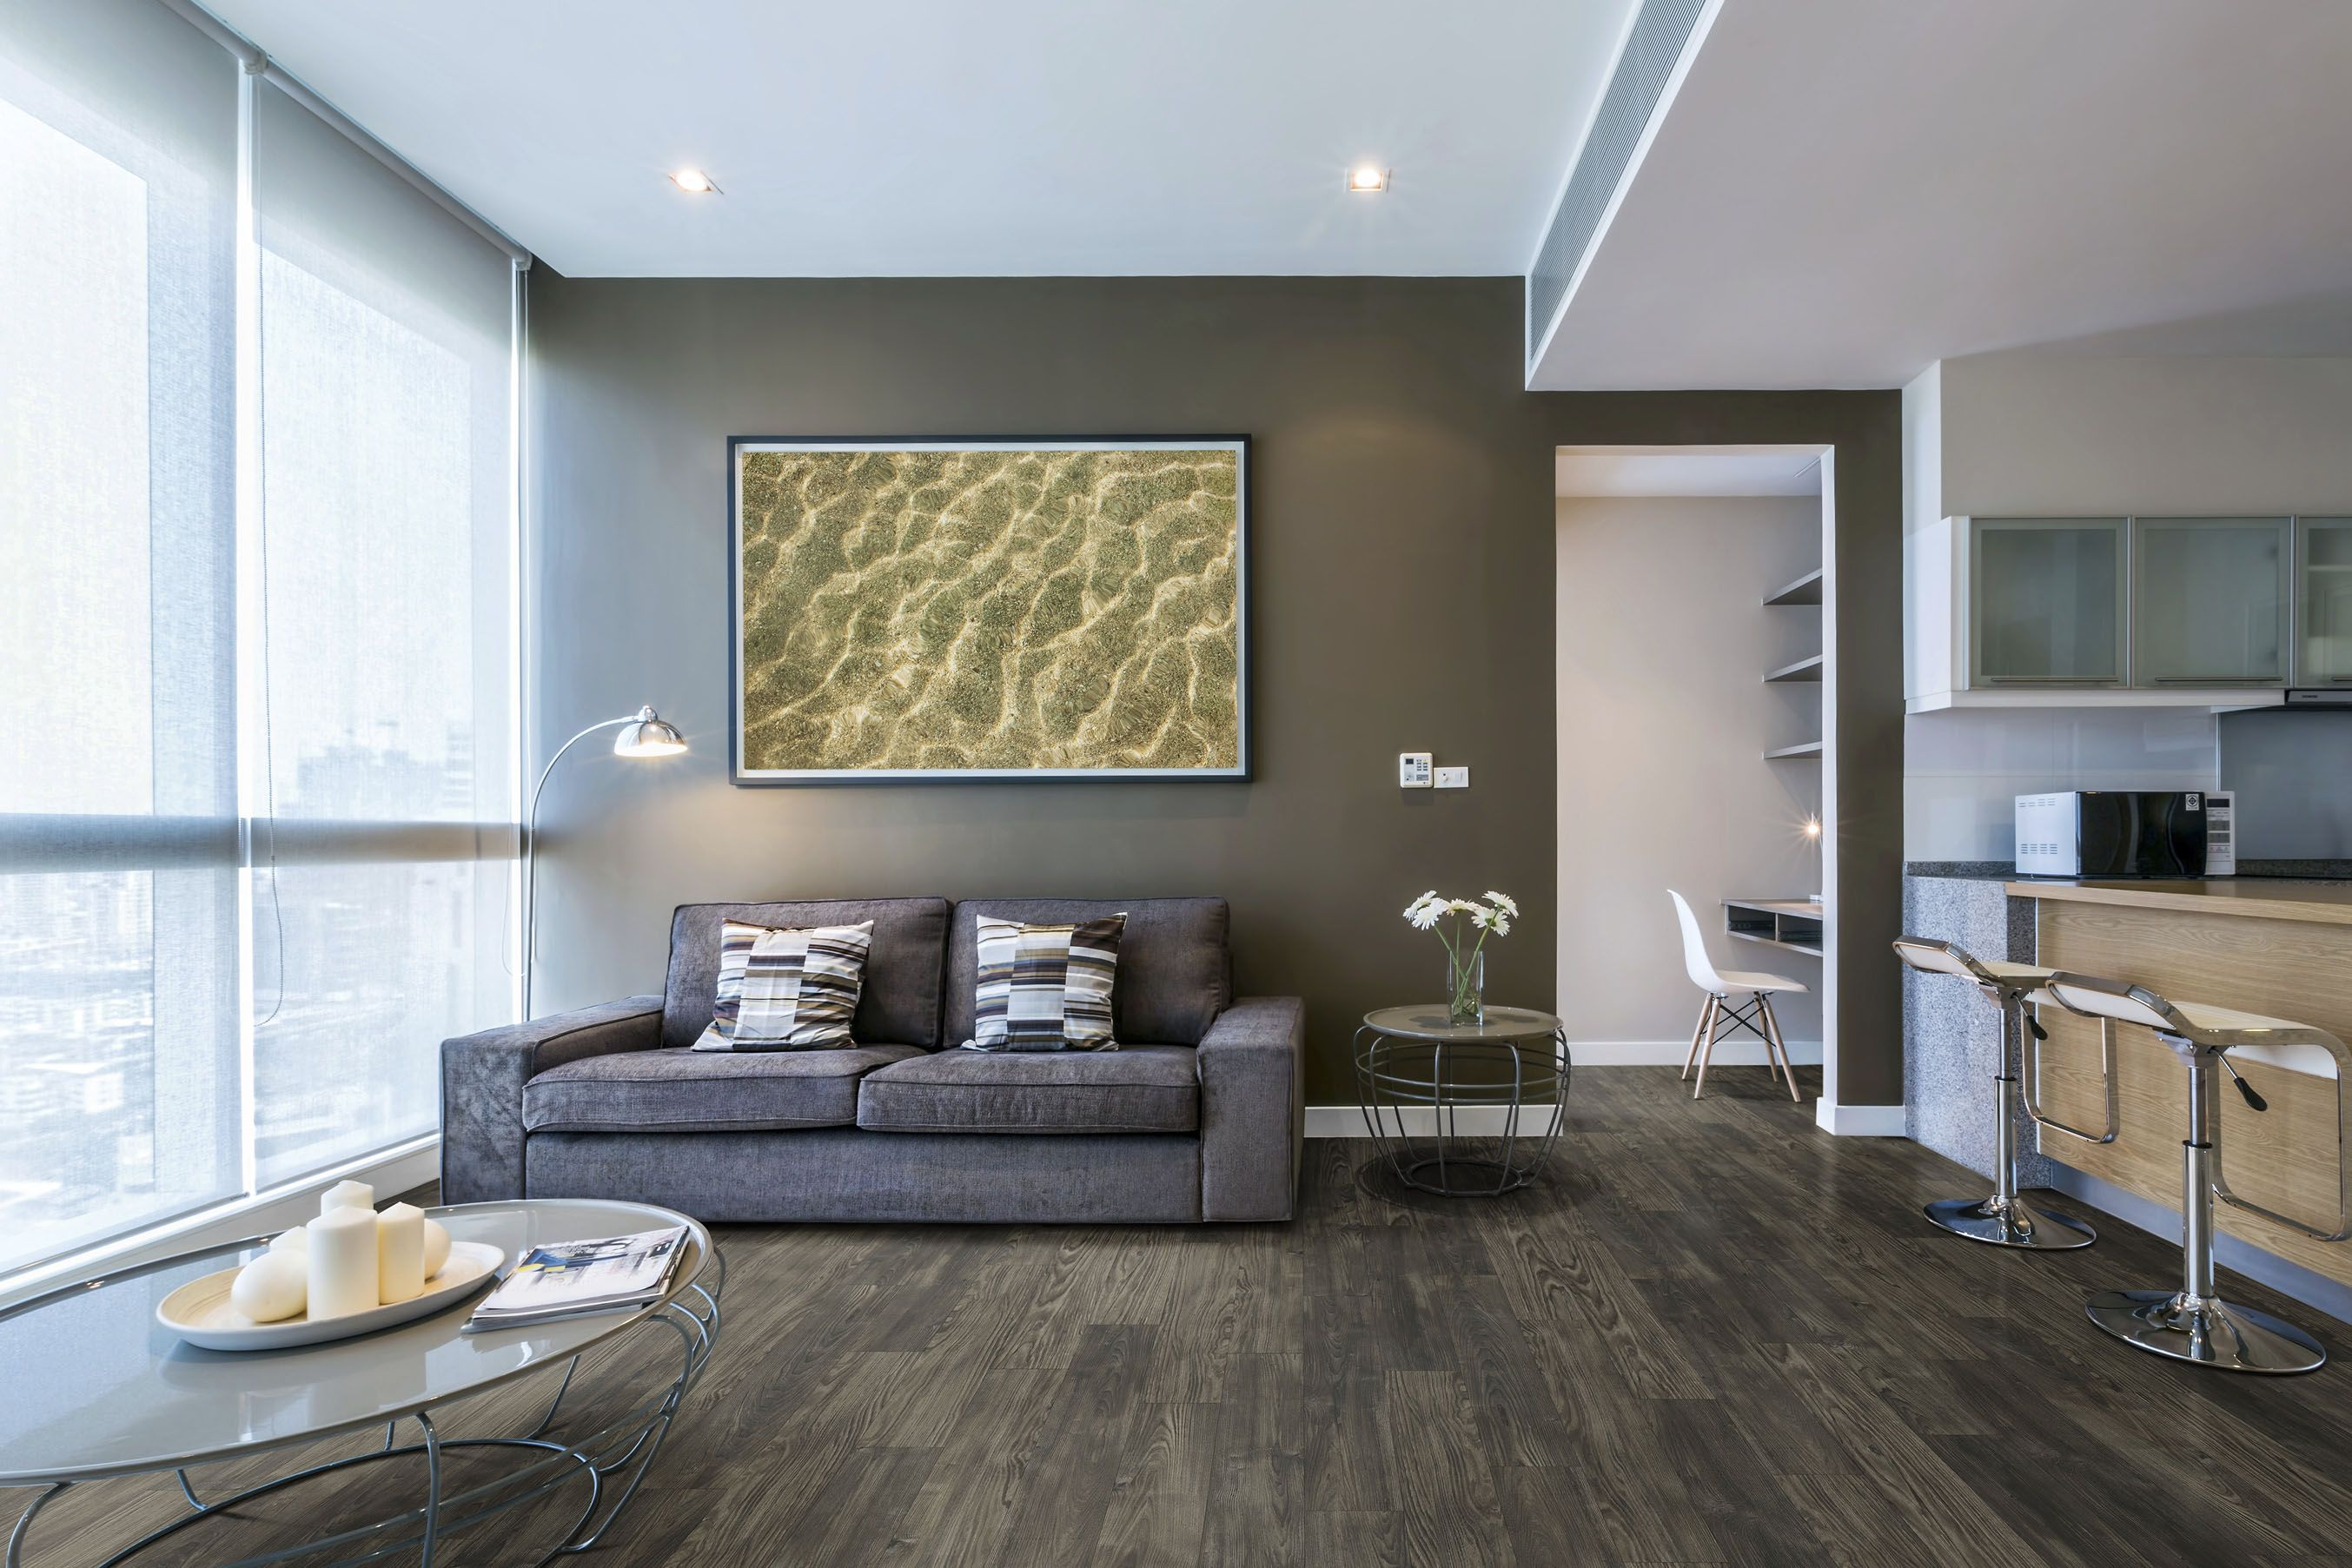 this gorgeous living room brought to you courtesy of metroflor lvt